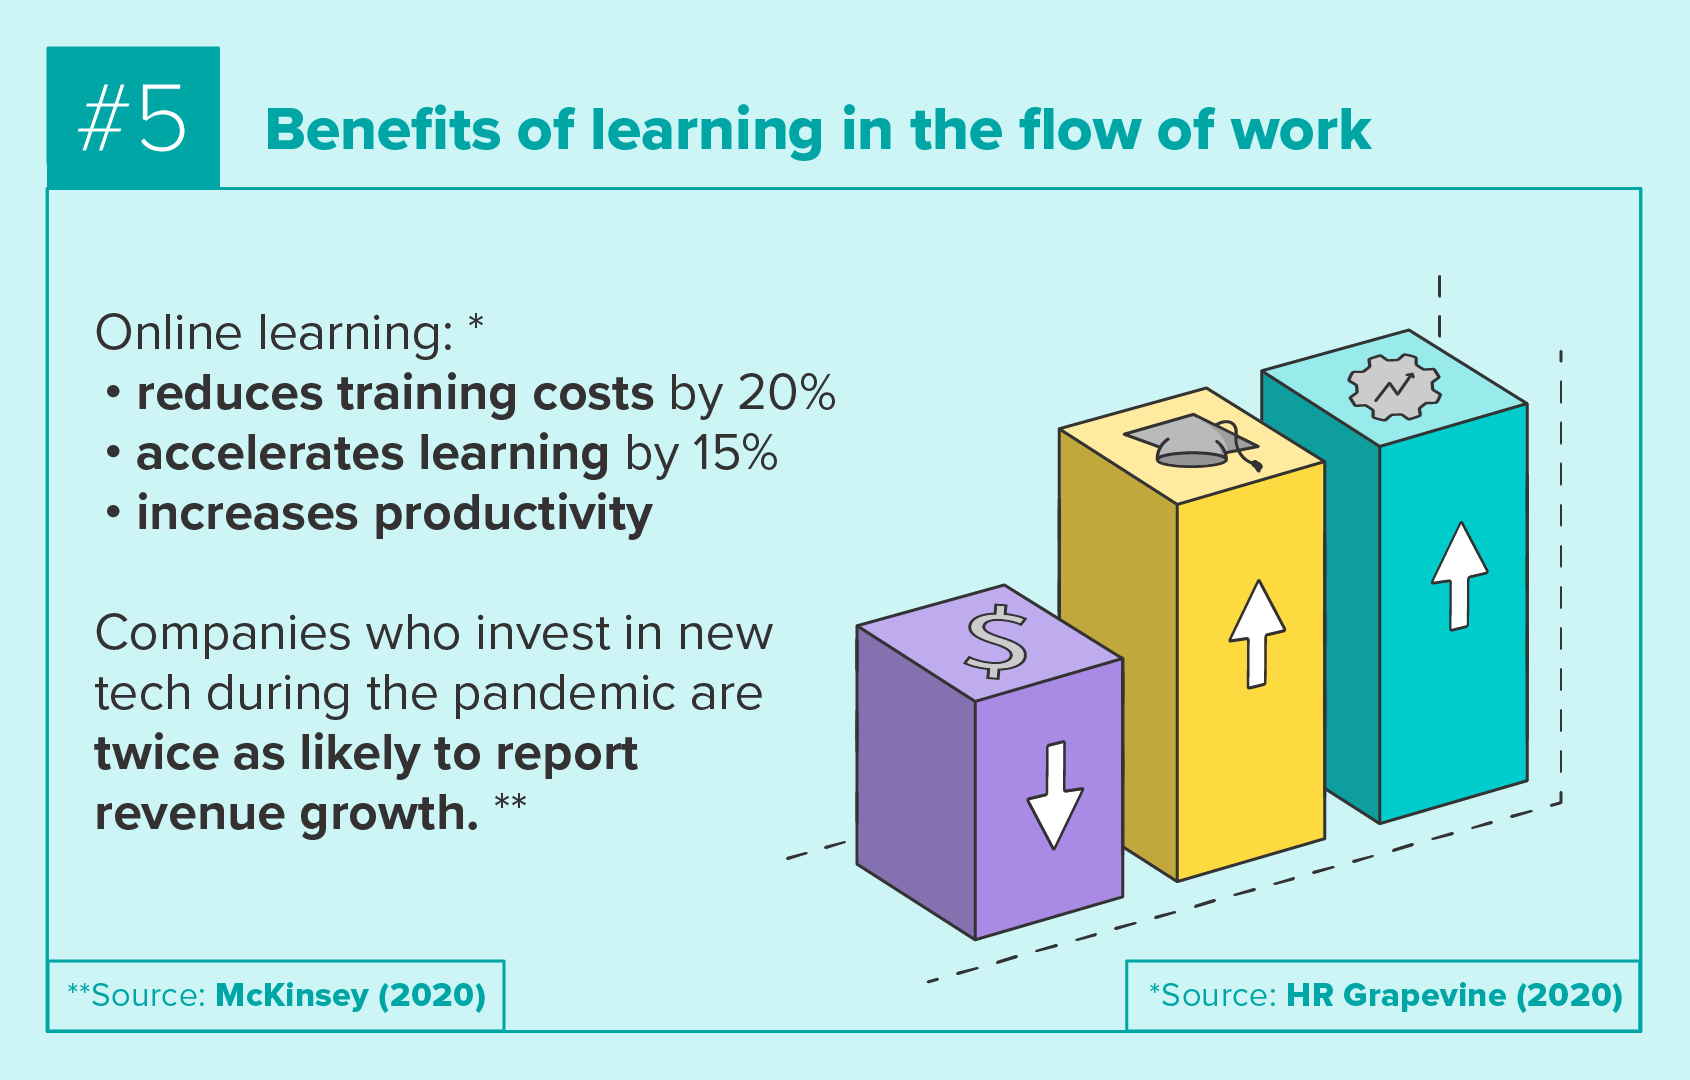 Benefits of learning in the flow of work